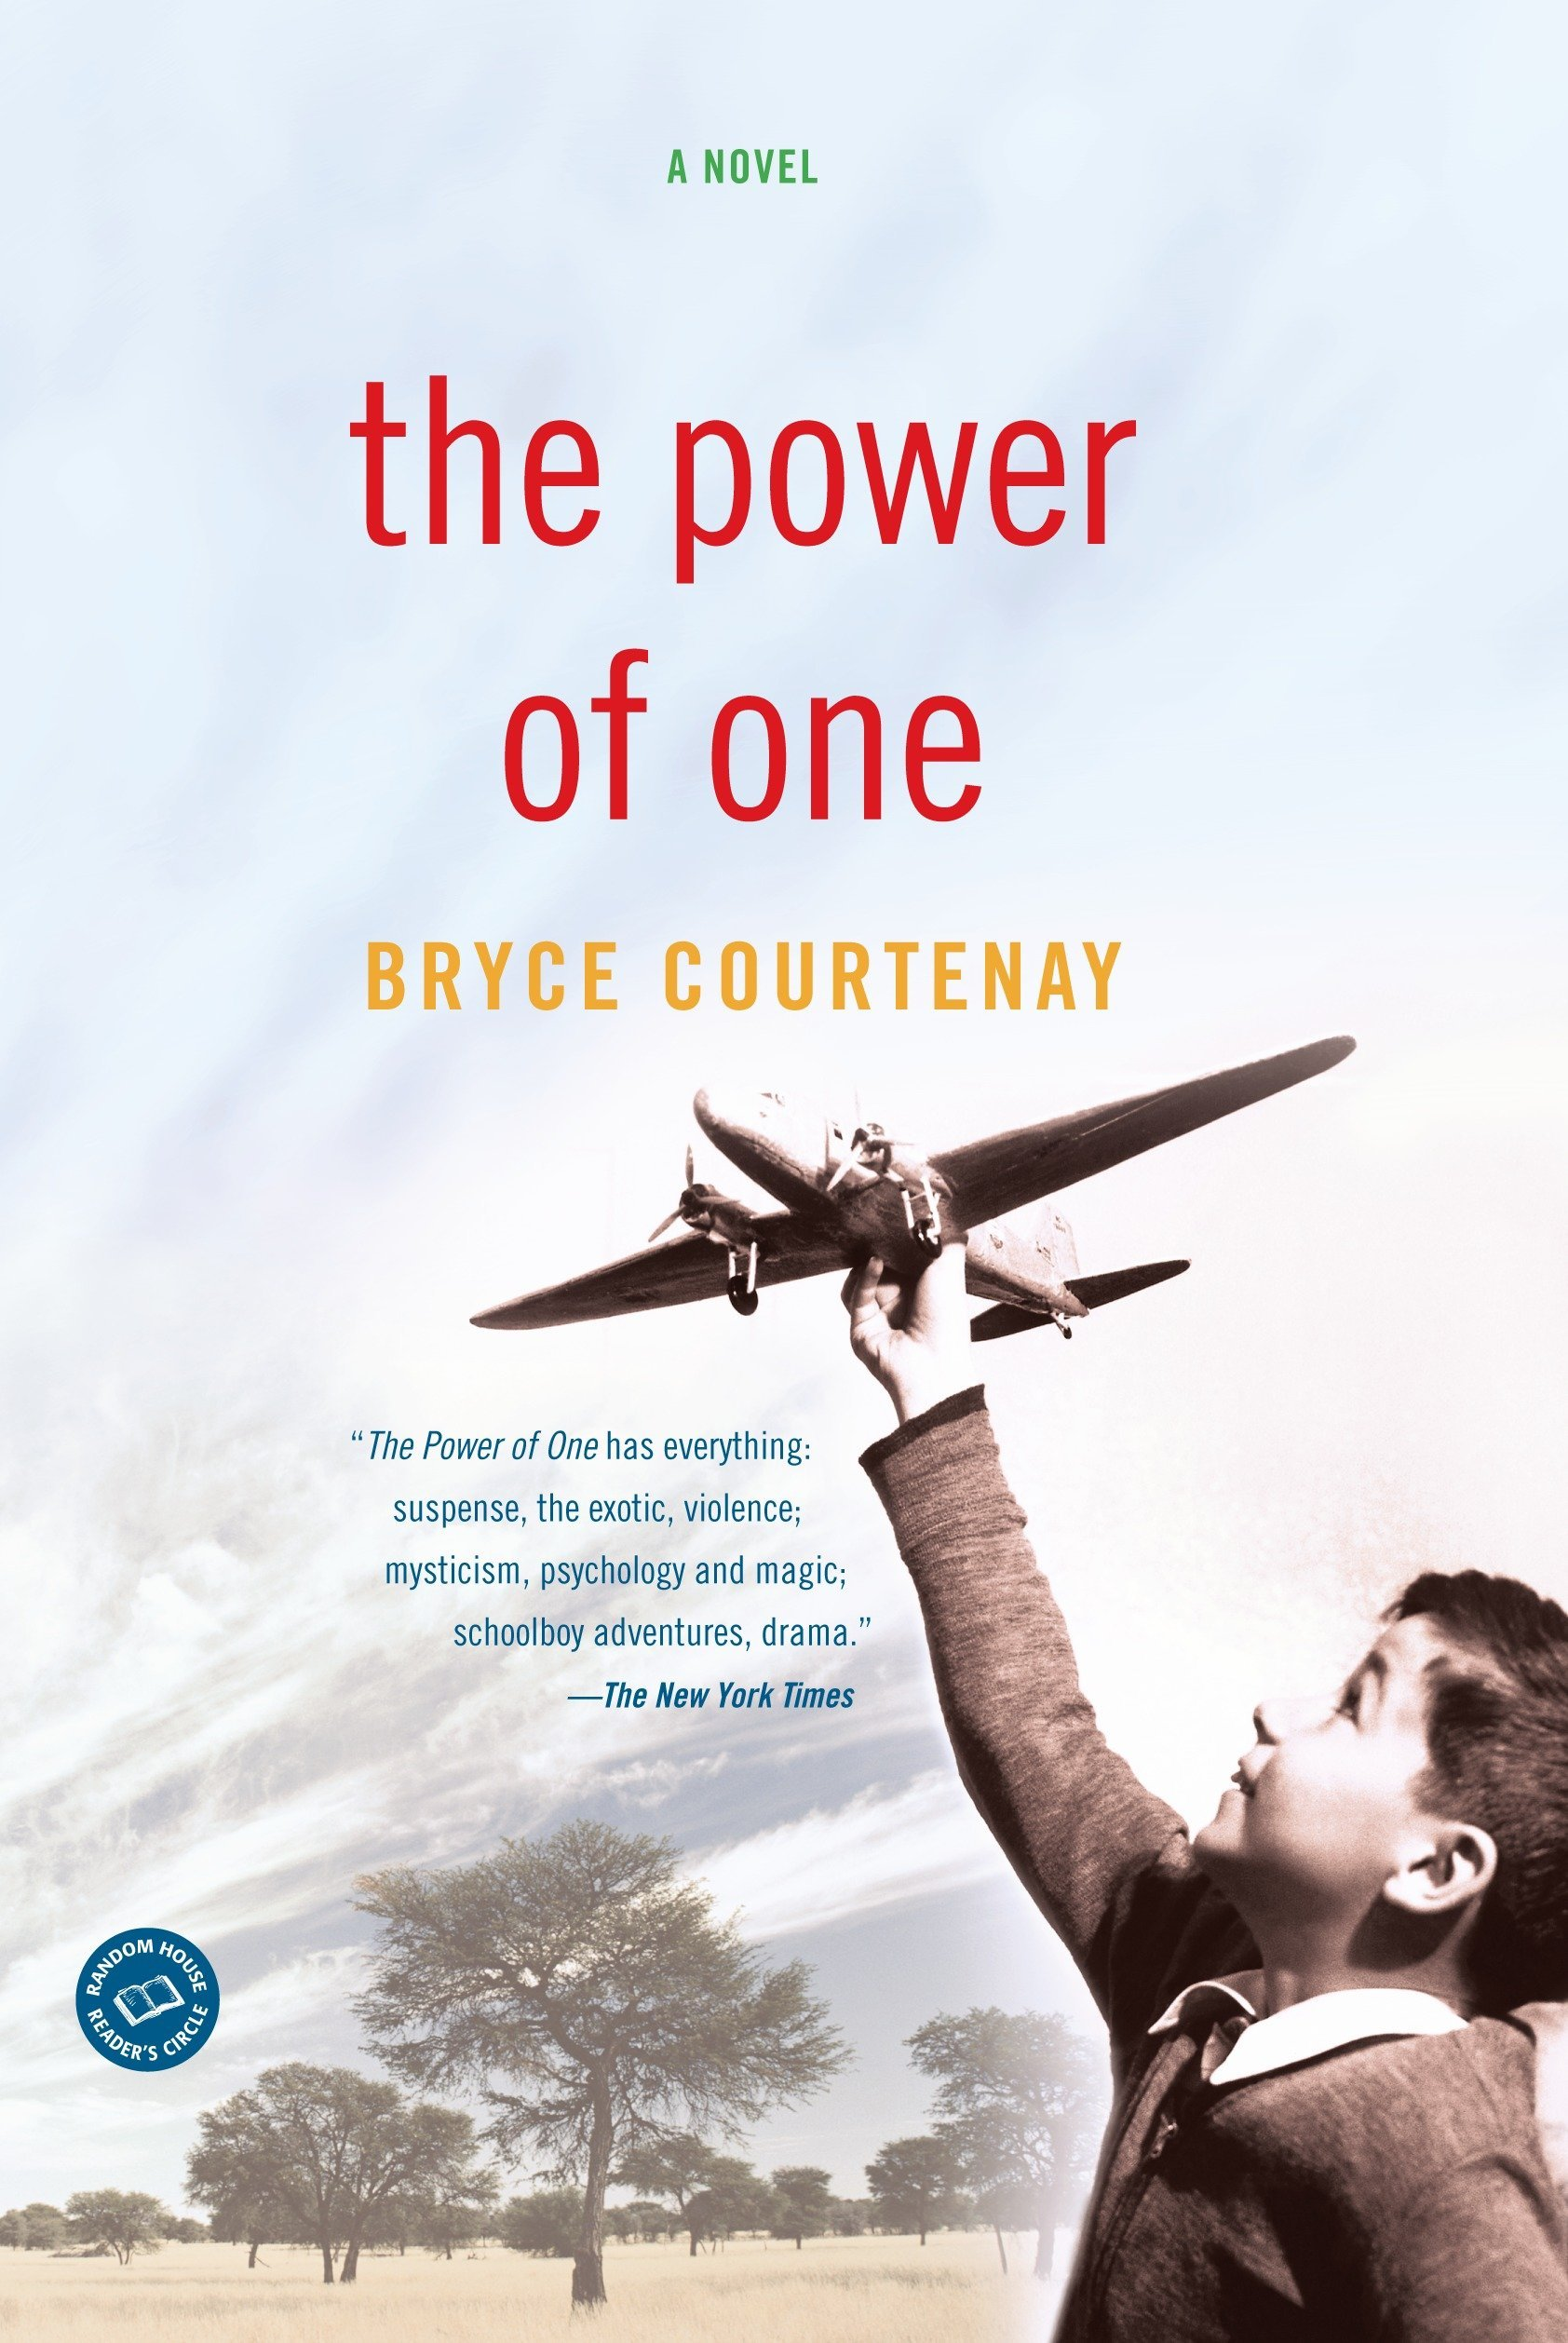 Amazon.com: The Power of One: A Novel (9780345410054): Courtenay ...